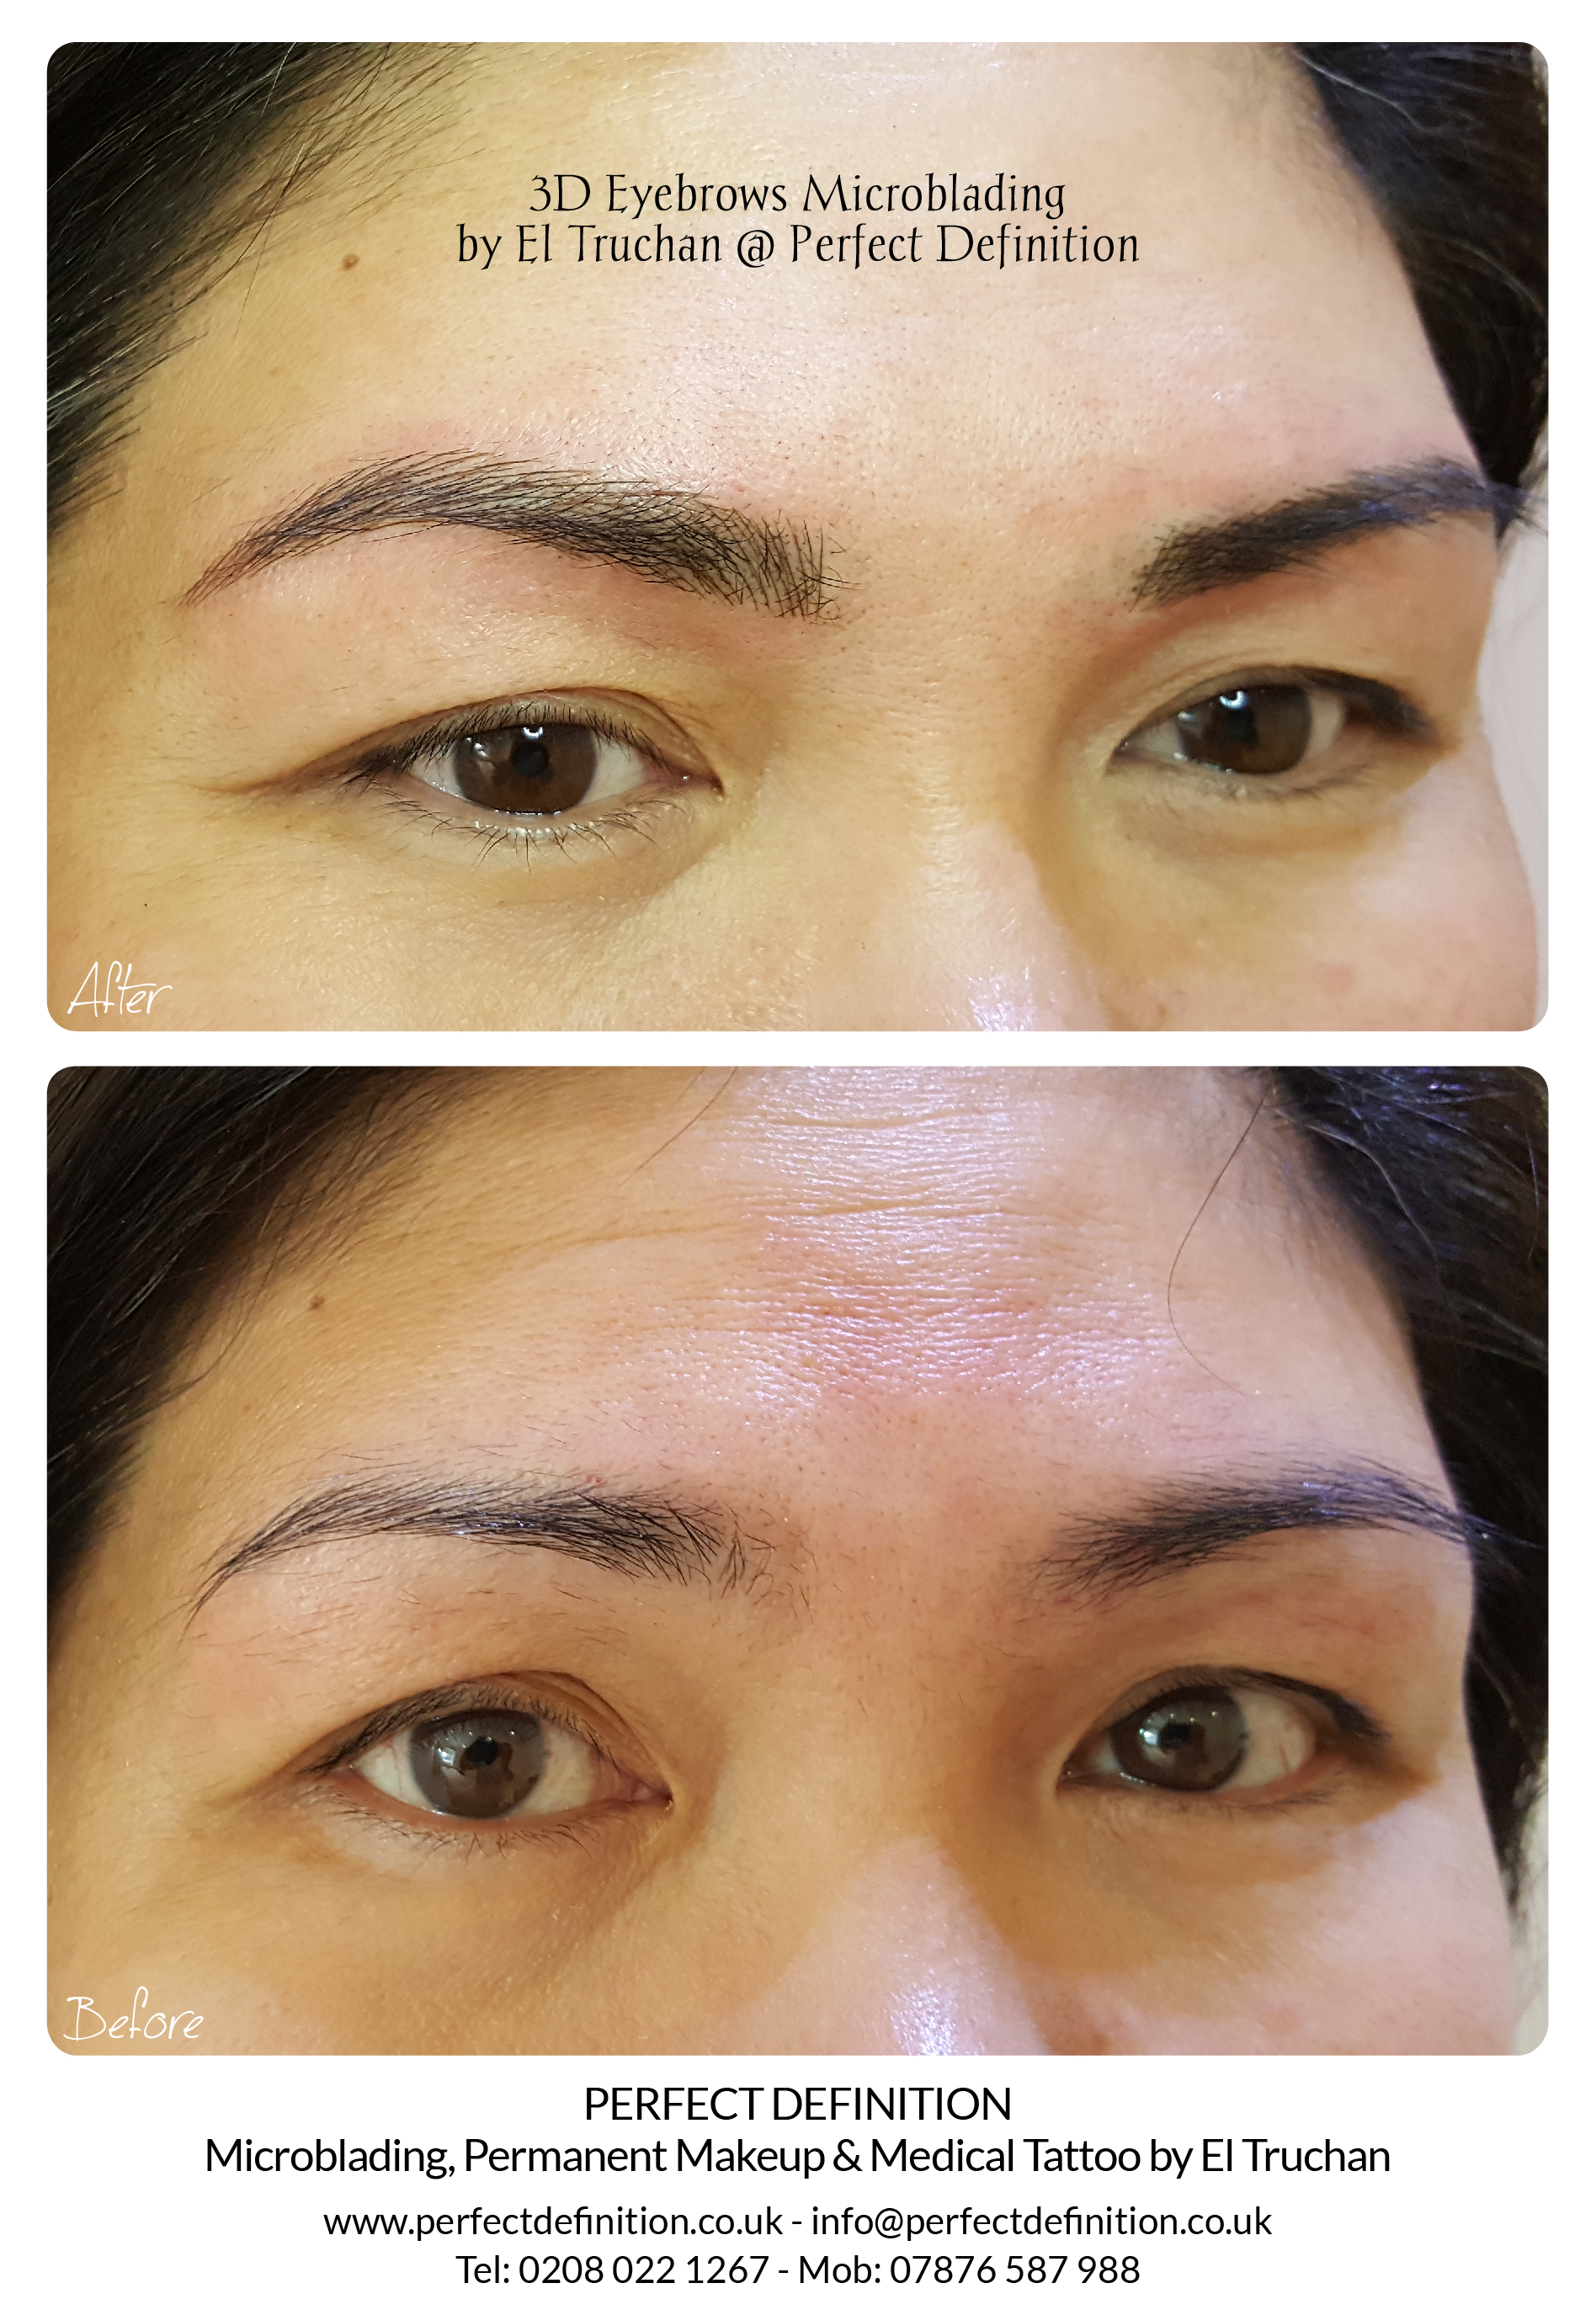 3D Eyebrows Microblading by El Truchan _